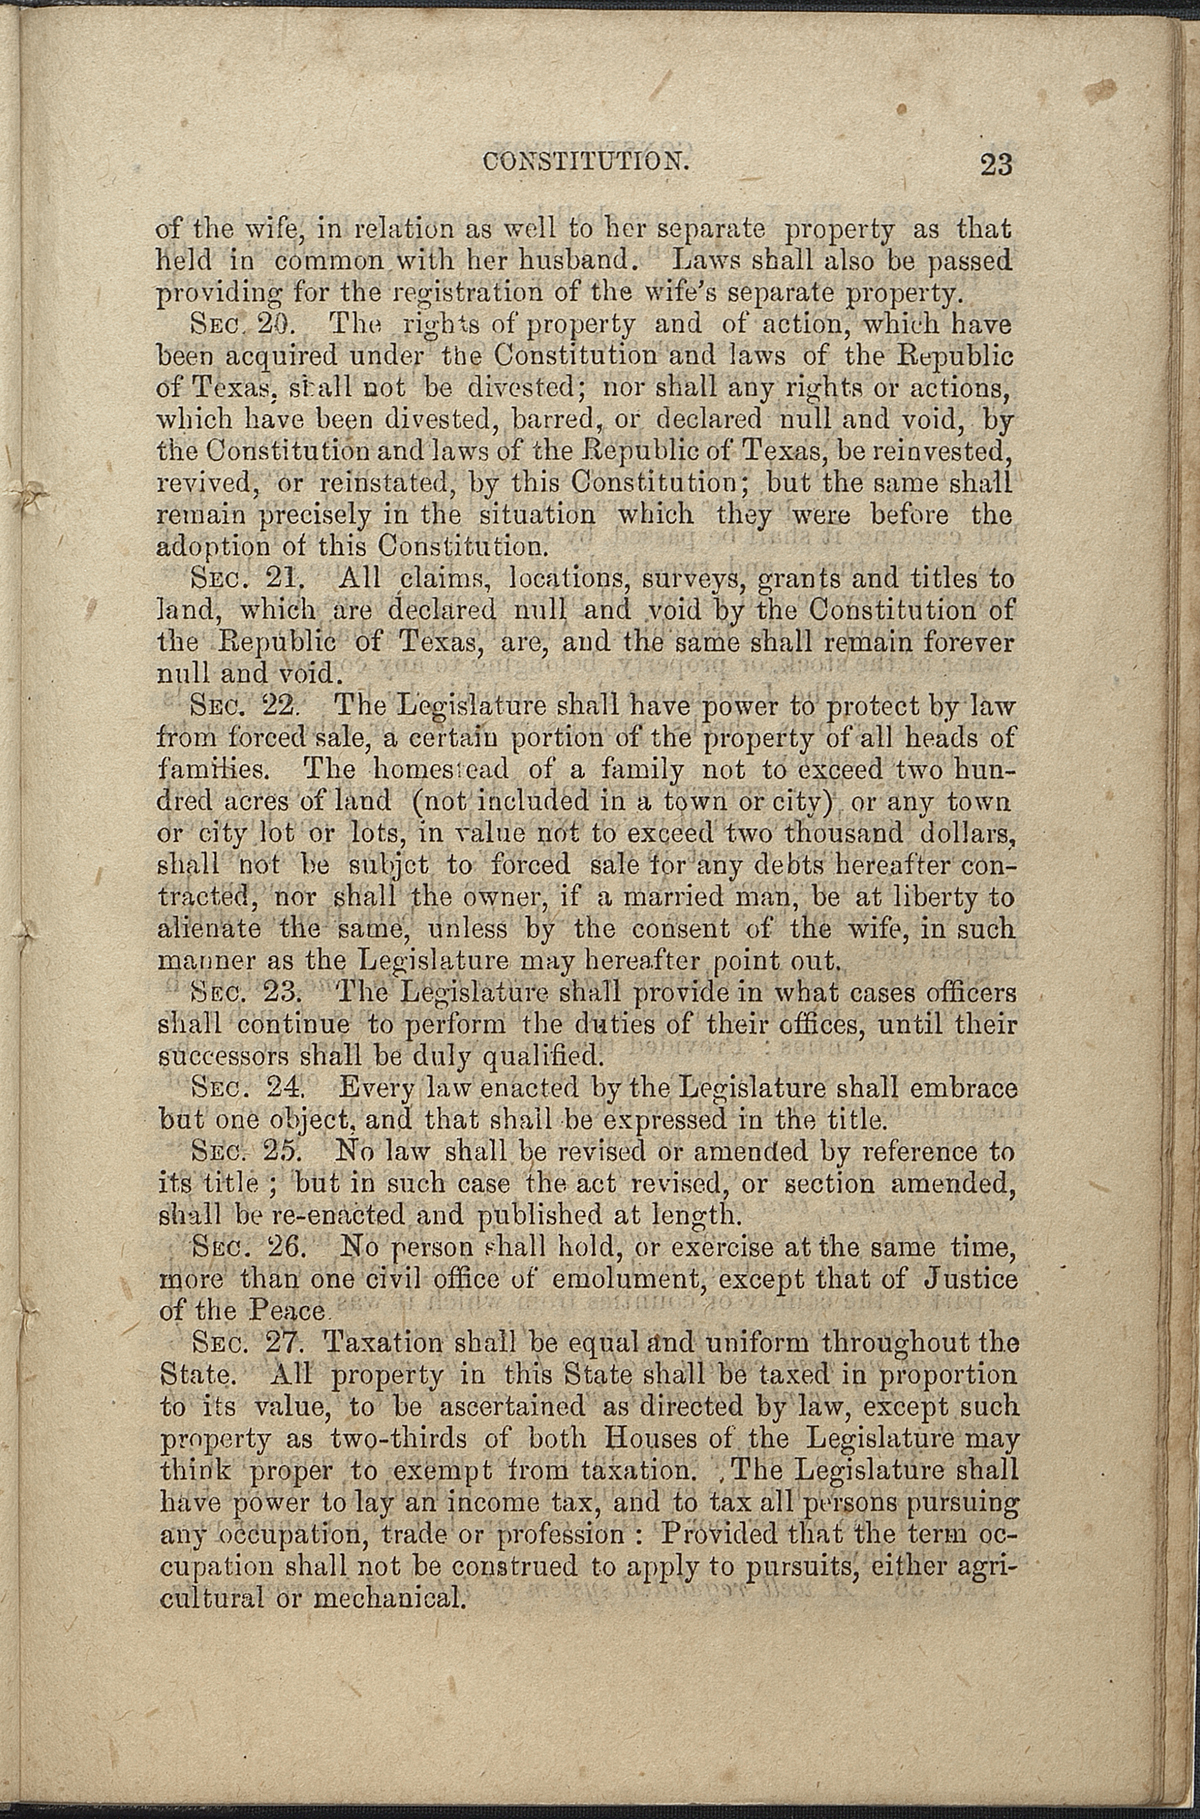 Article VII, Sections 19-27